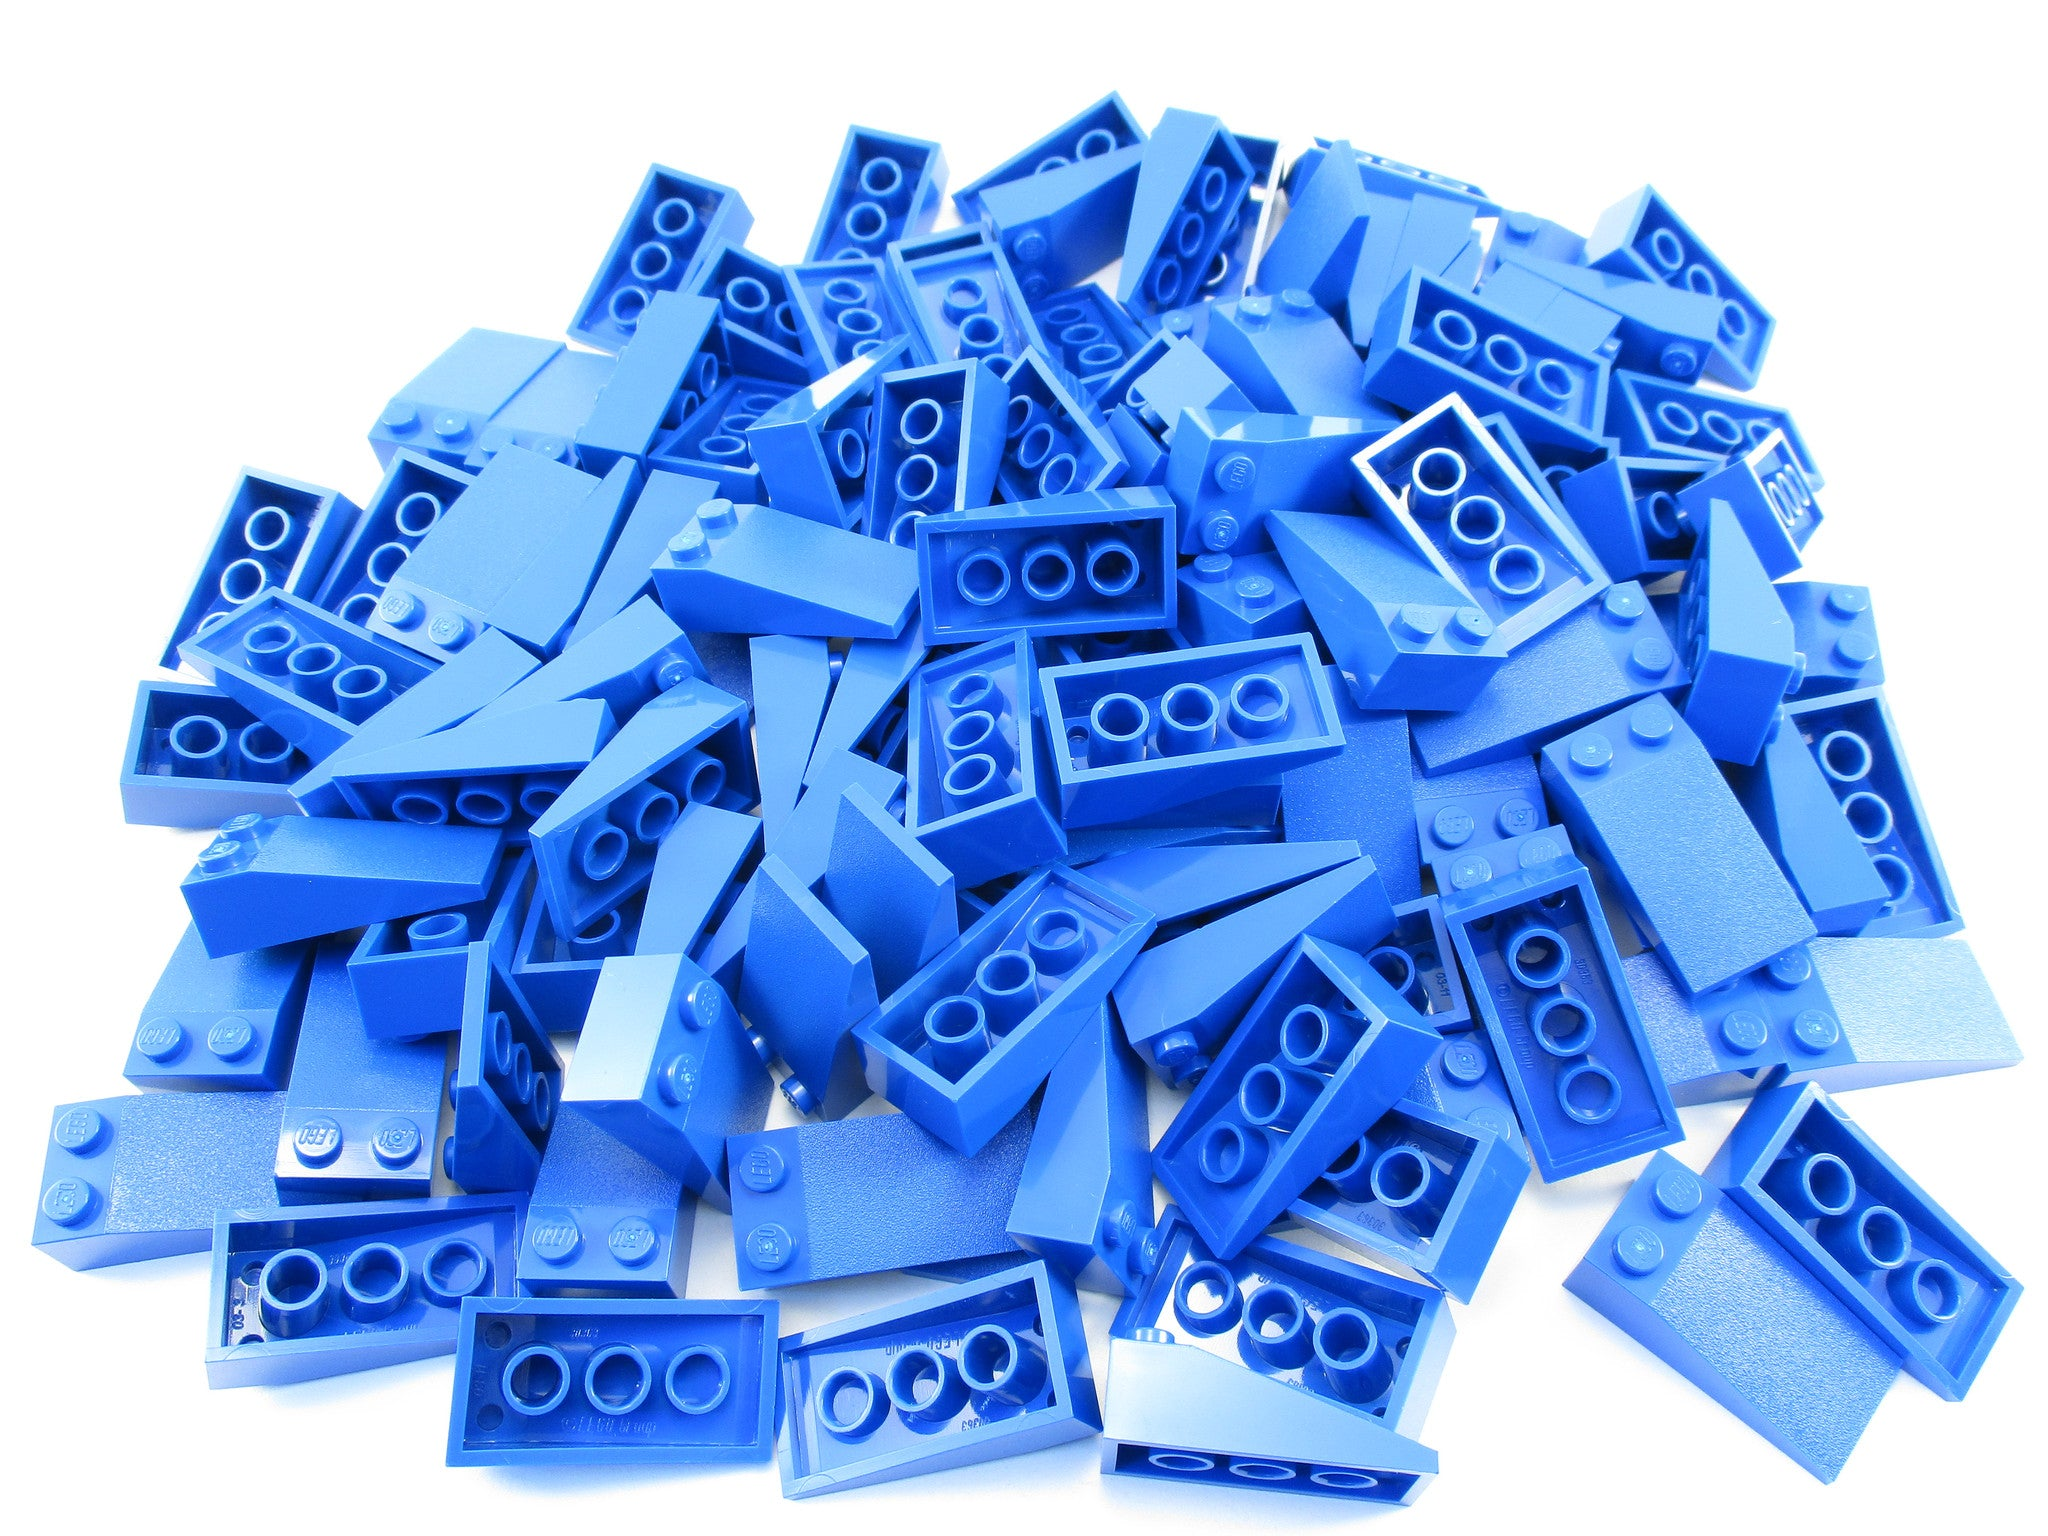 LEGO Blue Slope 18 4x2 Lot of 50 Parts Pieces 30363